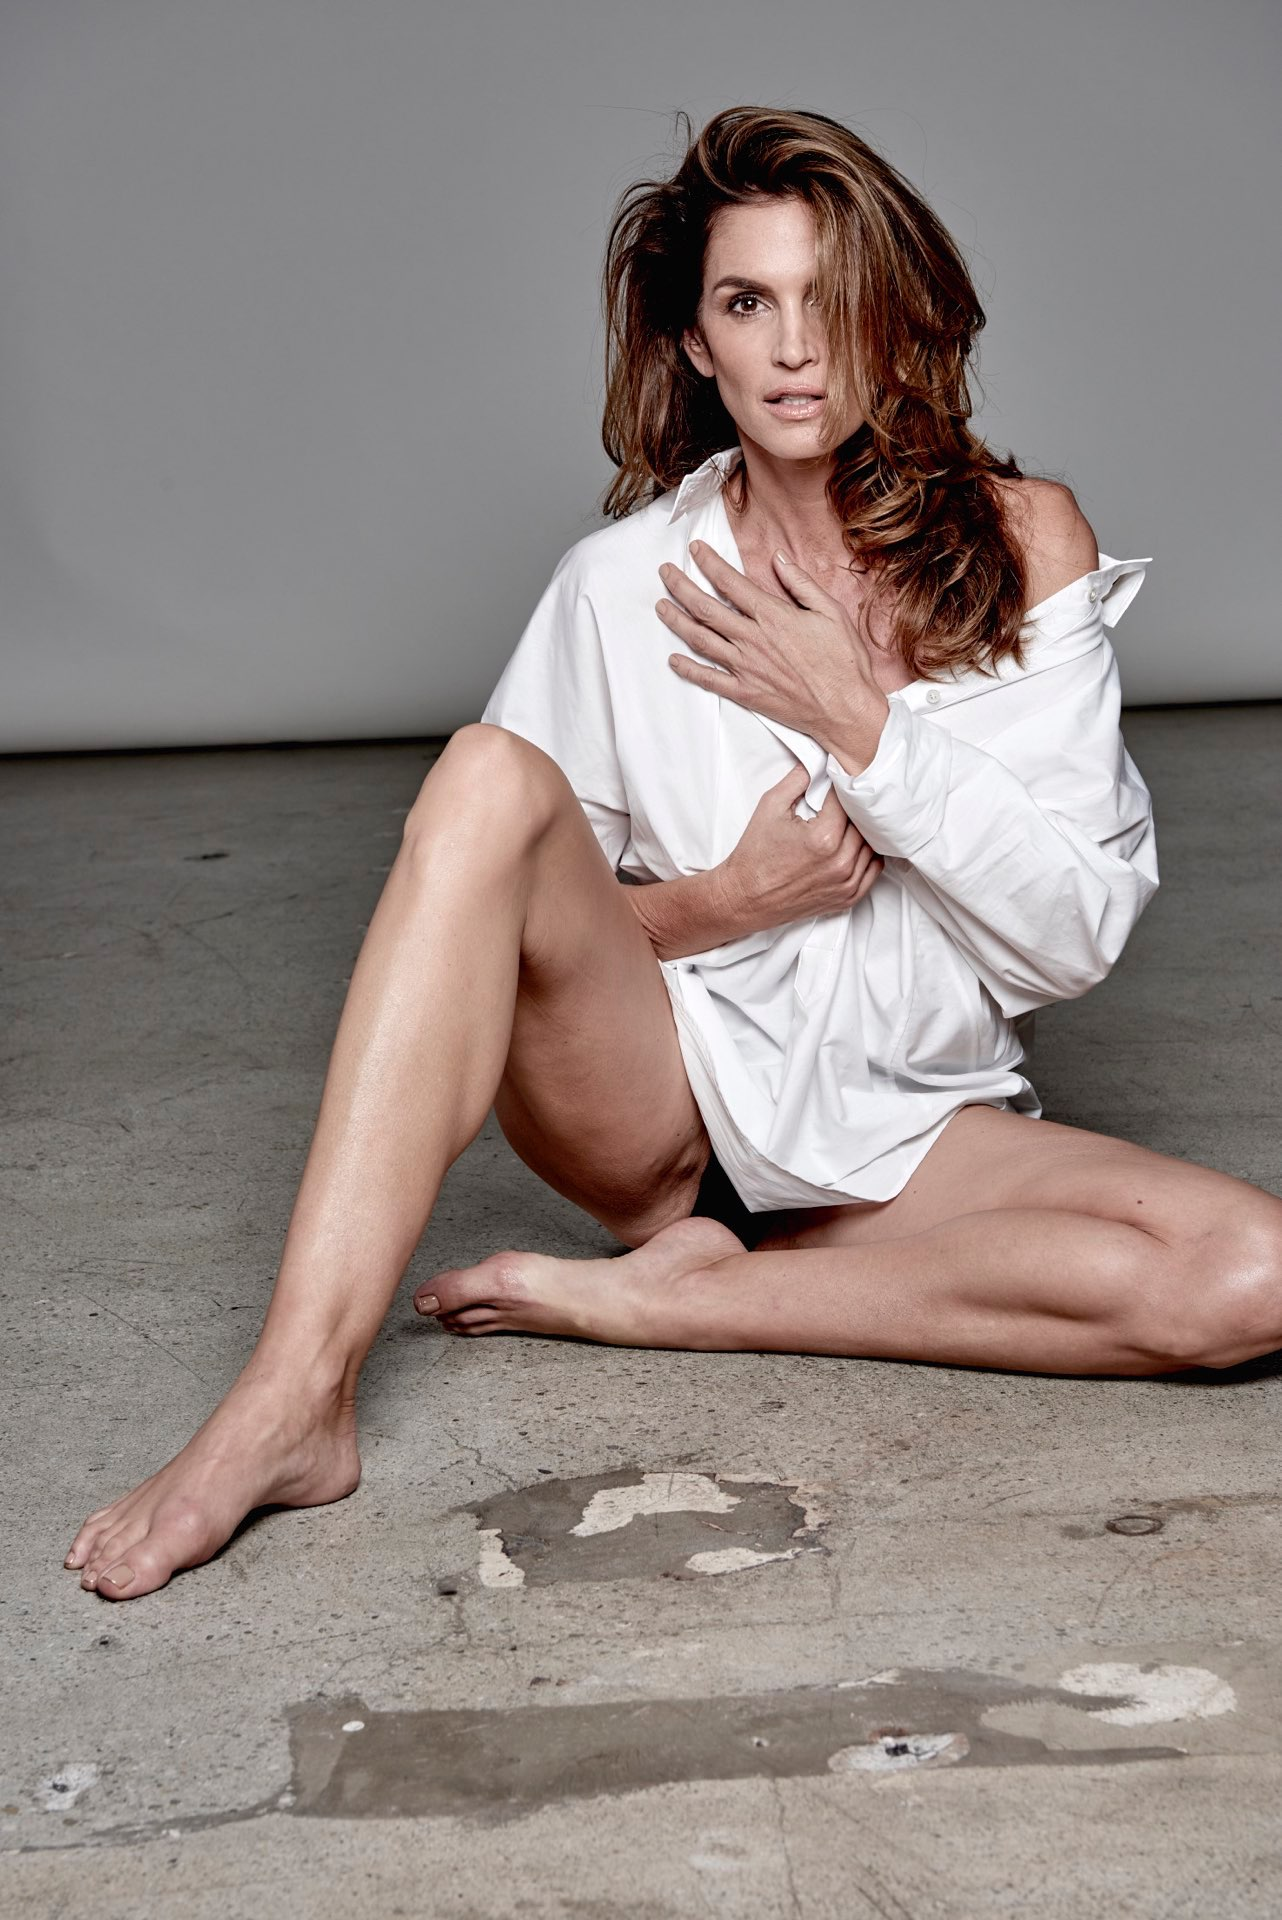 Cindy Crawford, 49, Flashes Nipples